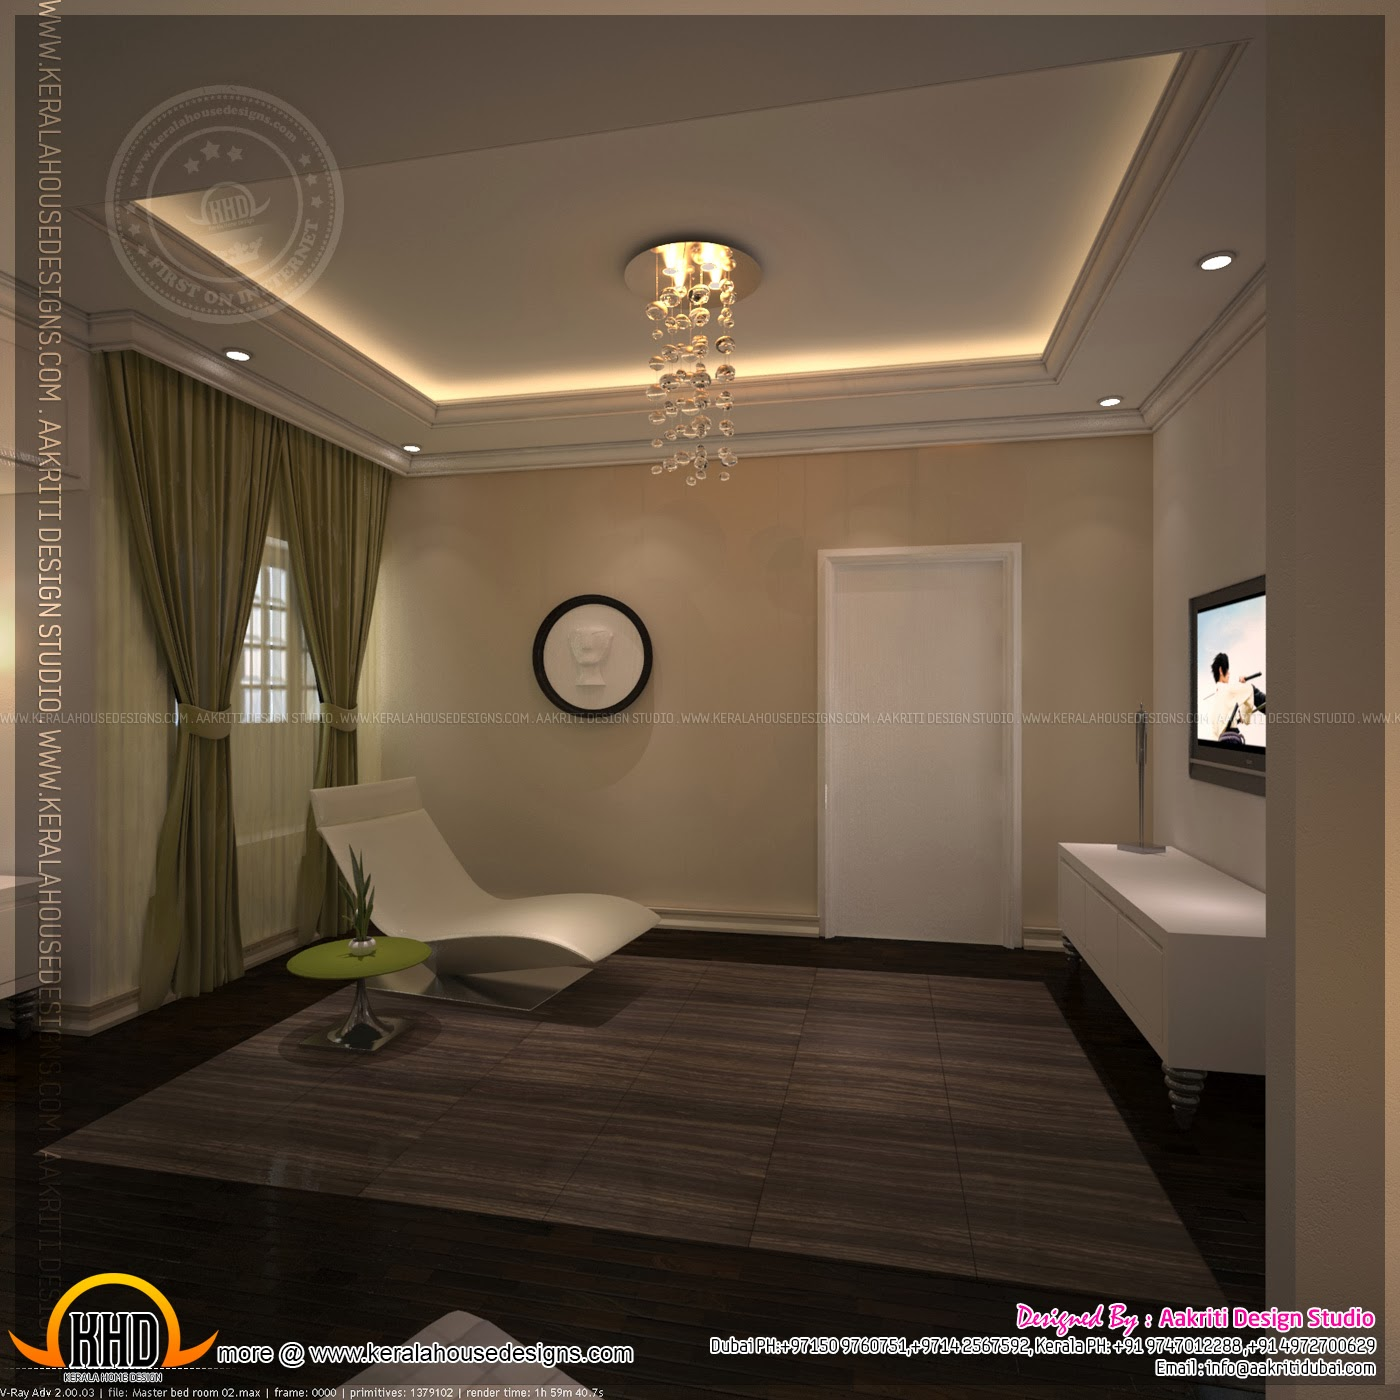 Master bedroom and bathroom interior design indian house for Interior design bedroom and bathroom